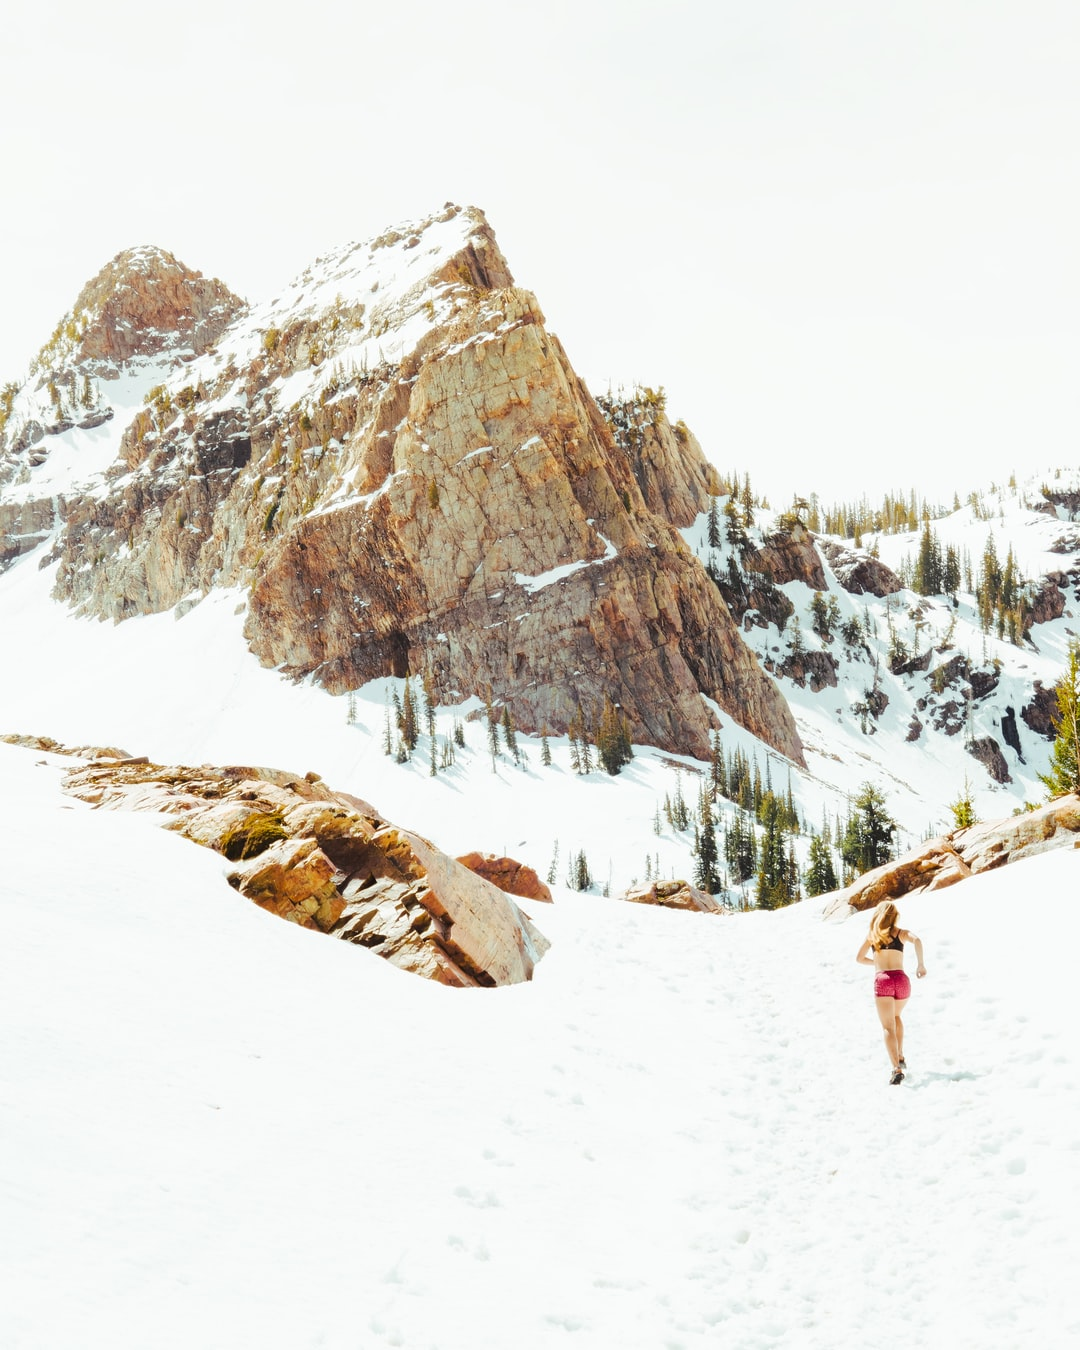 As soon as the peak came into sight, we knew the lake was there.  She took off running out of pure joy and excitement.  My first instinct was to follow and take in all the beauty at once, but I decided I would try and capture the moment.  It's not everyday you find a girl who's so fascinated by nature that she decides to run uphill in snow (wearing sandals), just to get the first sight.